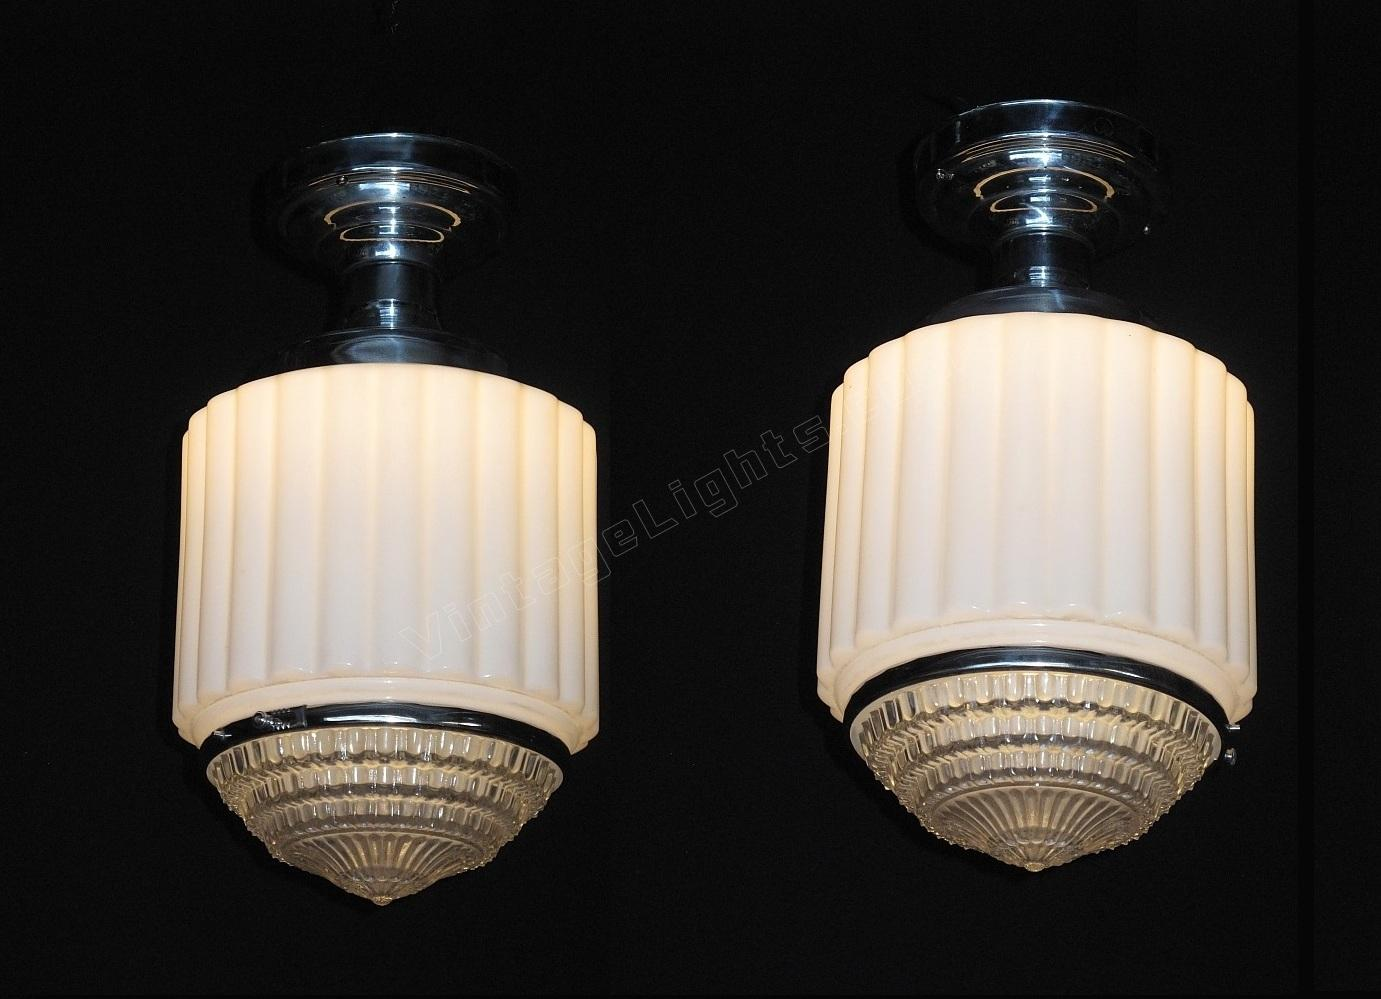 Vintage Schoolhouse Art Deco Lighting Fixtures Antique Kitchen - Antique kitchen light fixtures